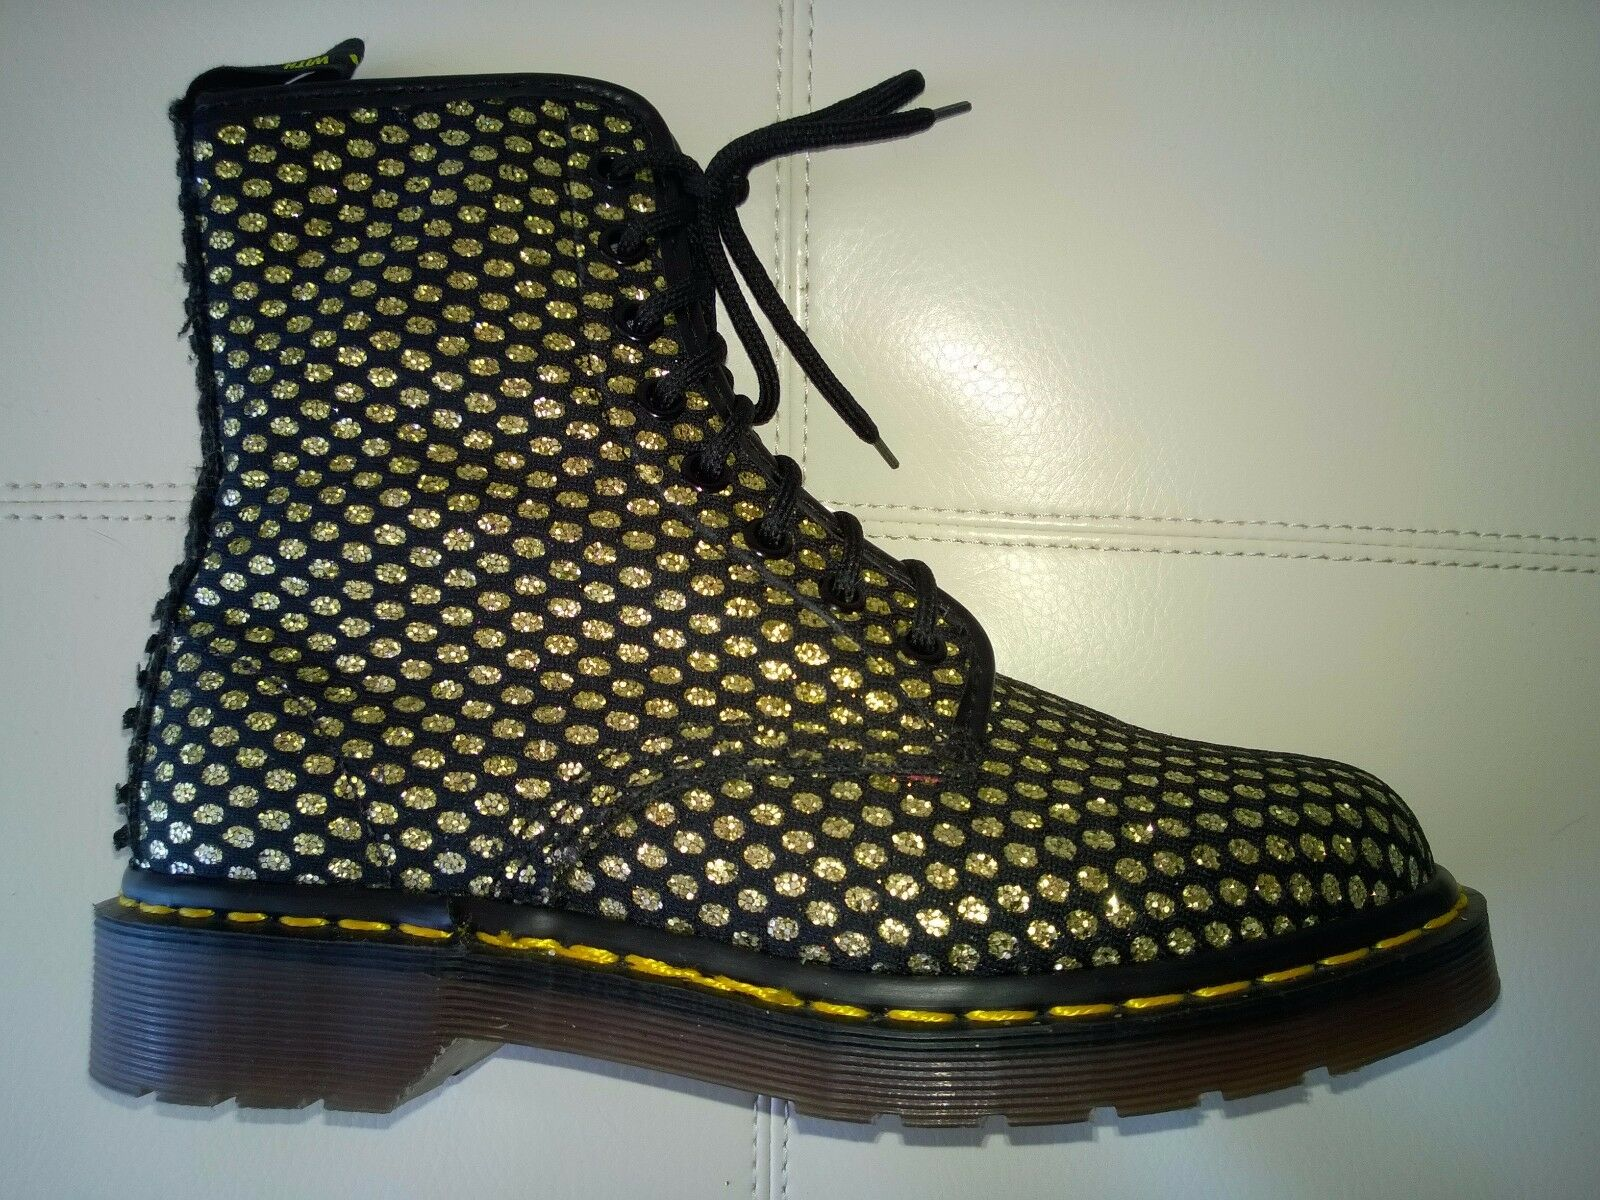 DOC DR. MARTENS gold GLITTER OVAL PATTERN BOOTS RARE VINTAGE MADE IN ENGLAND 5UK